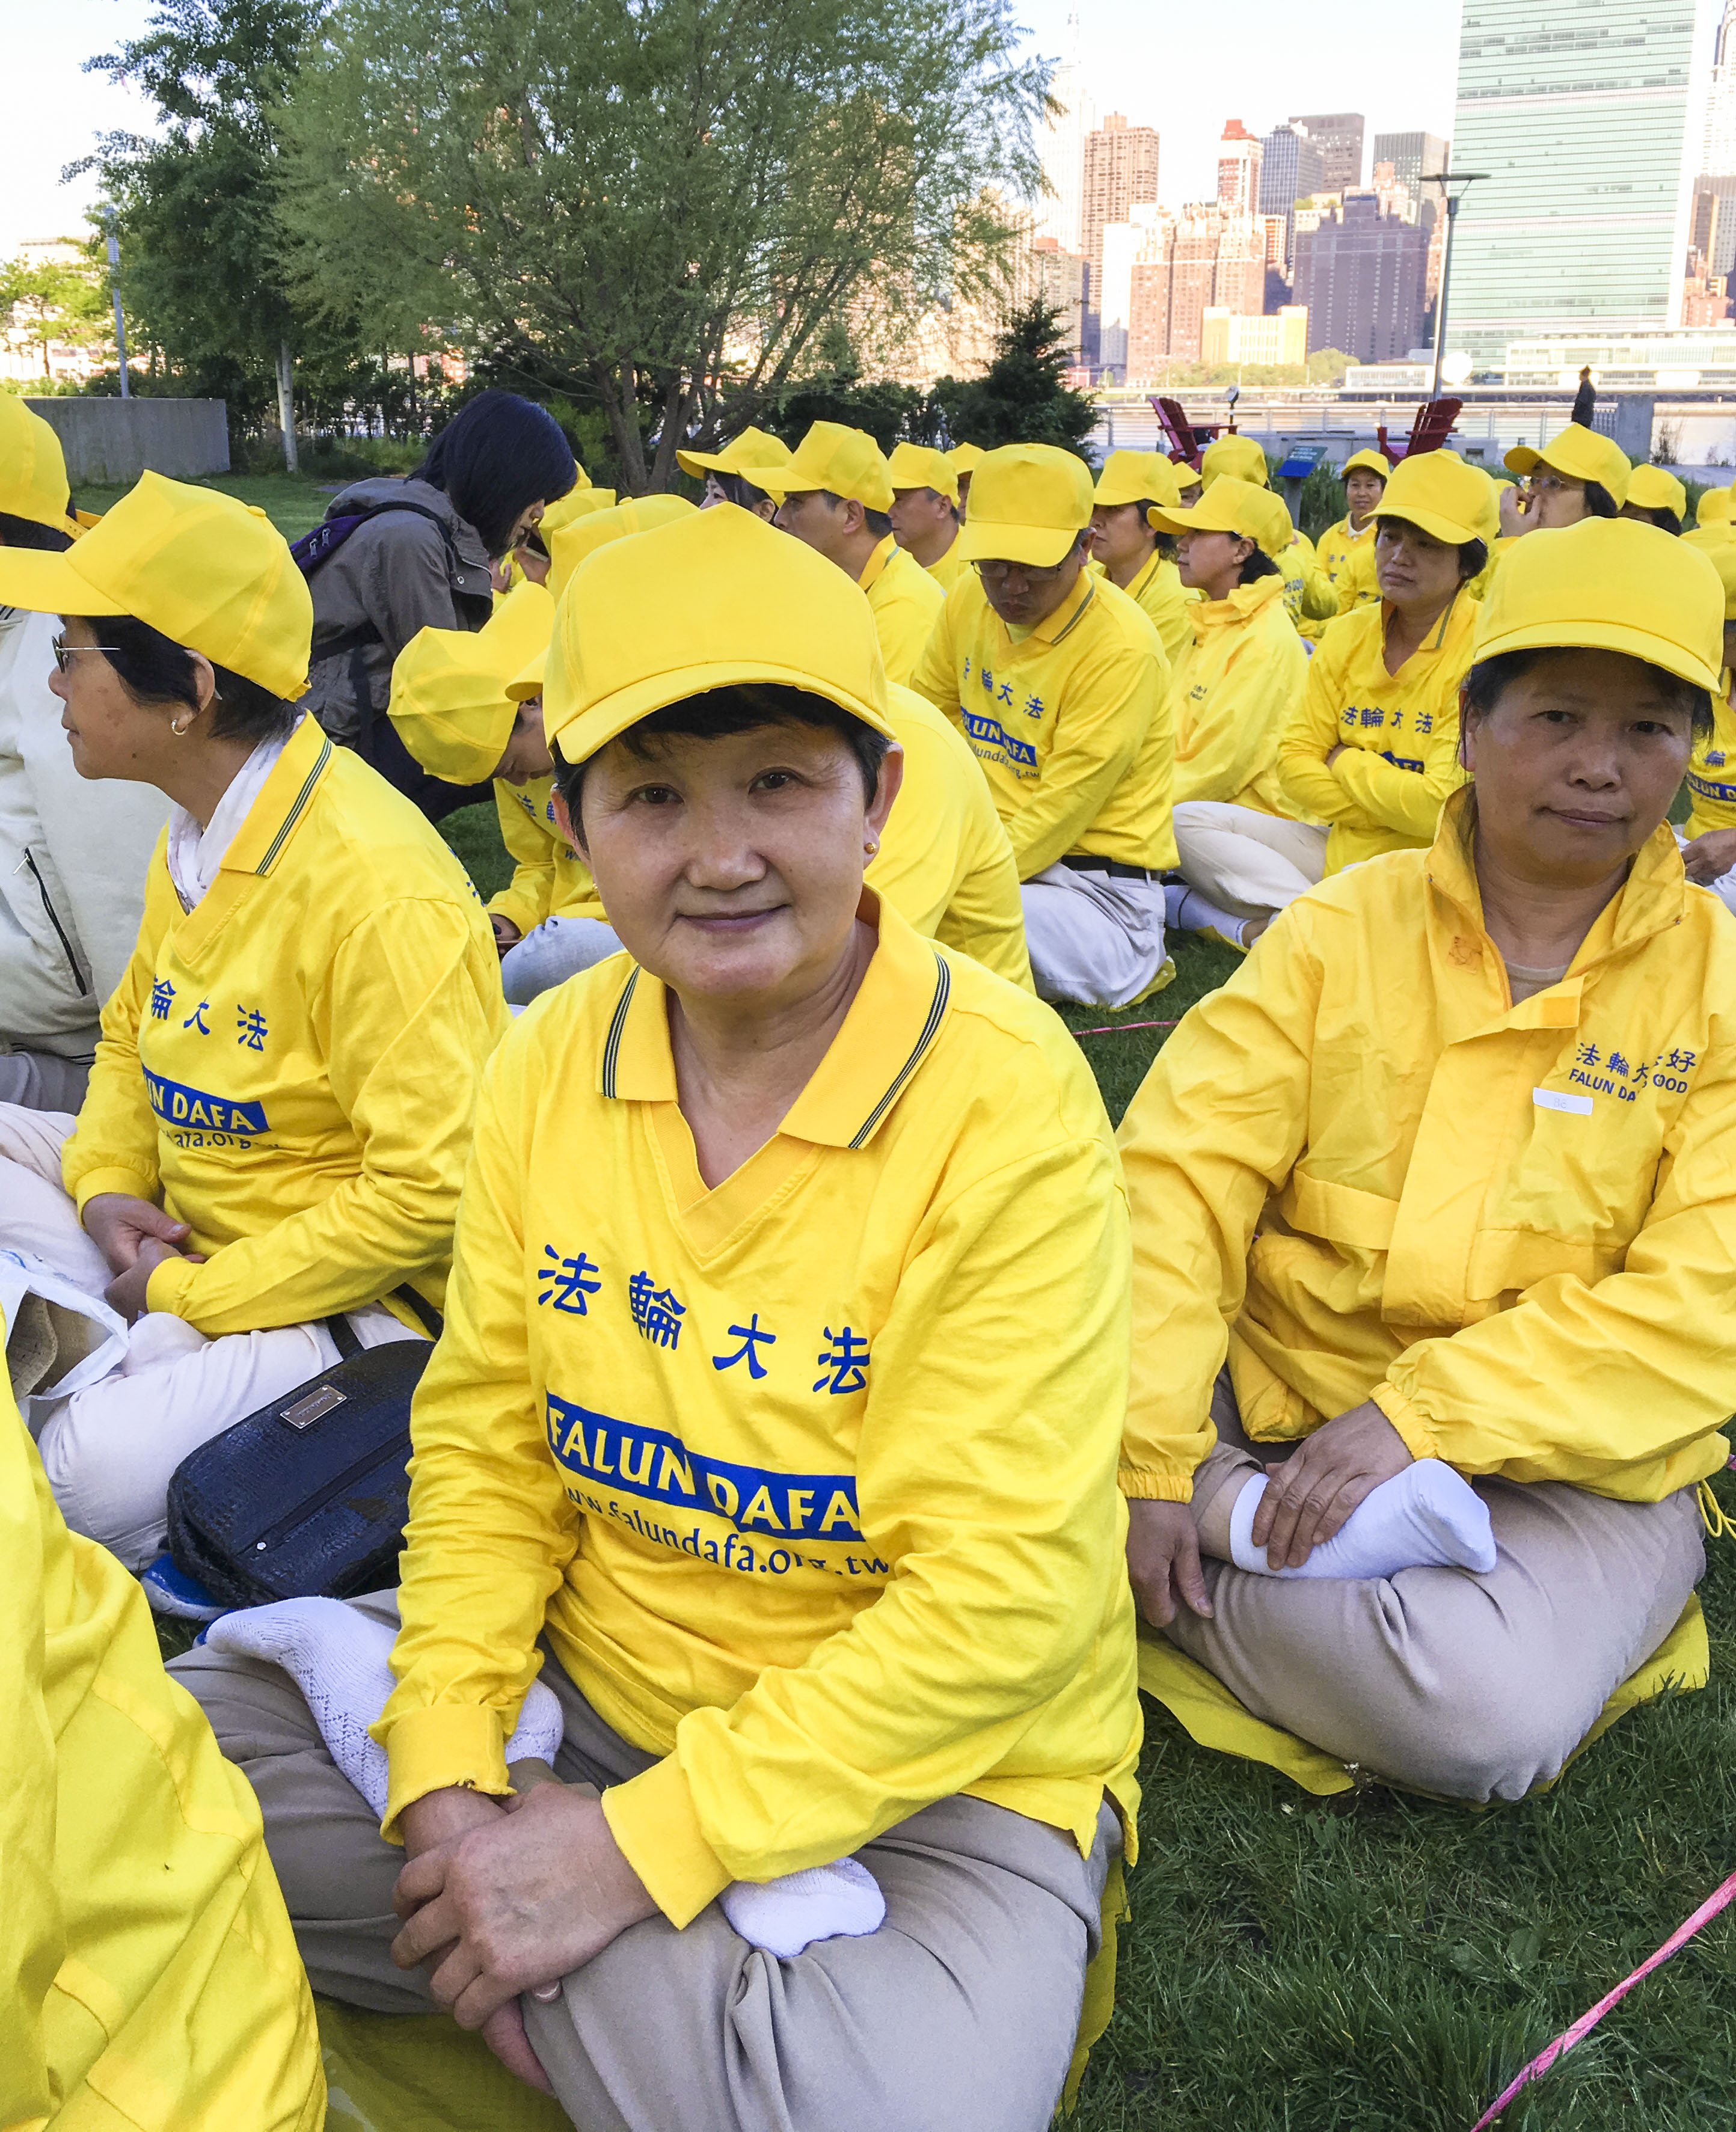 Zhang Guanghua (C), a Falun Gong practitioner from Beijing, joins a character formation event at Gantry Plaza State Park on May 12, 2016. (Larry Ong/Epoch Times)